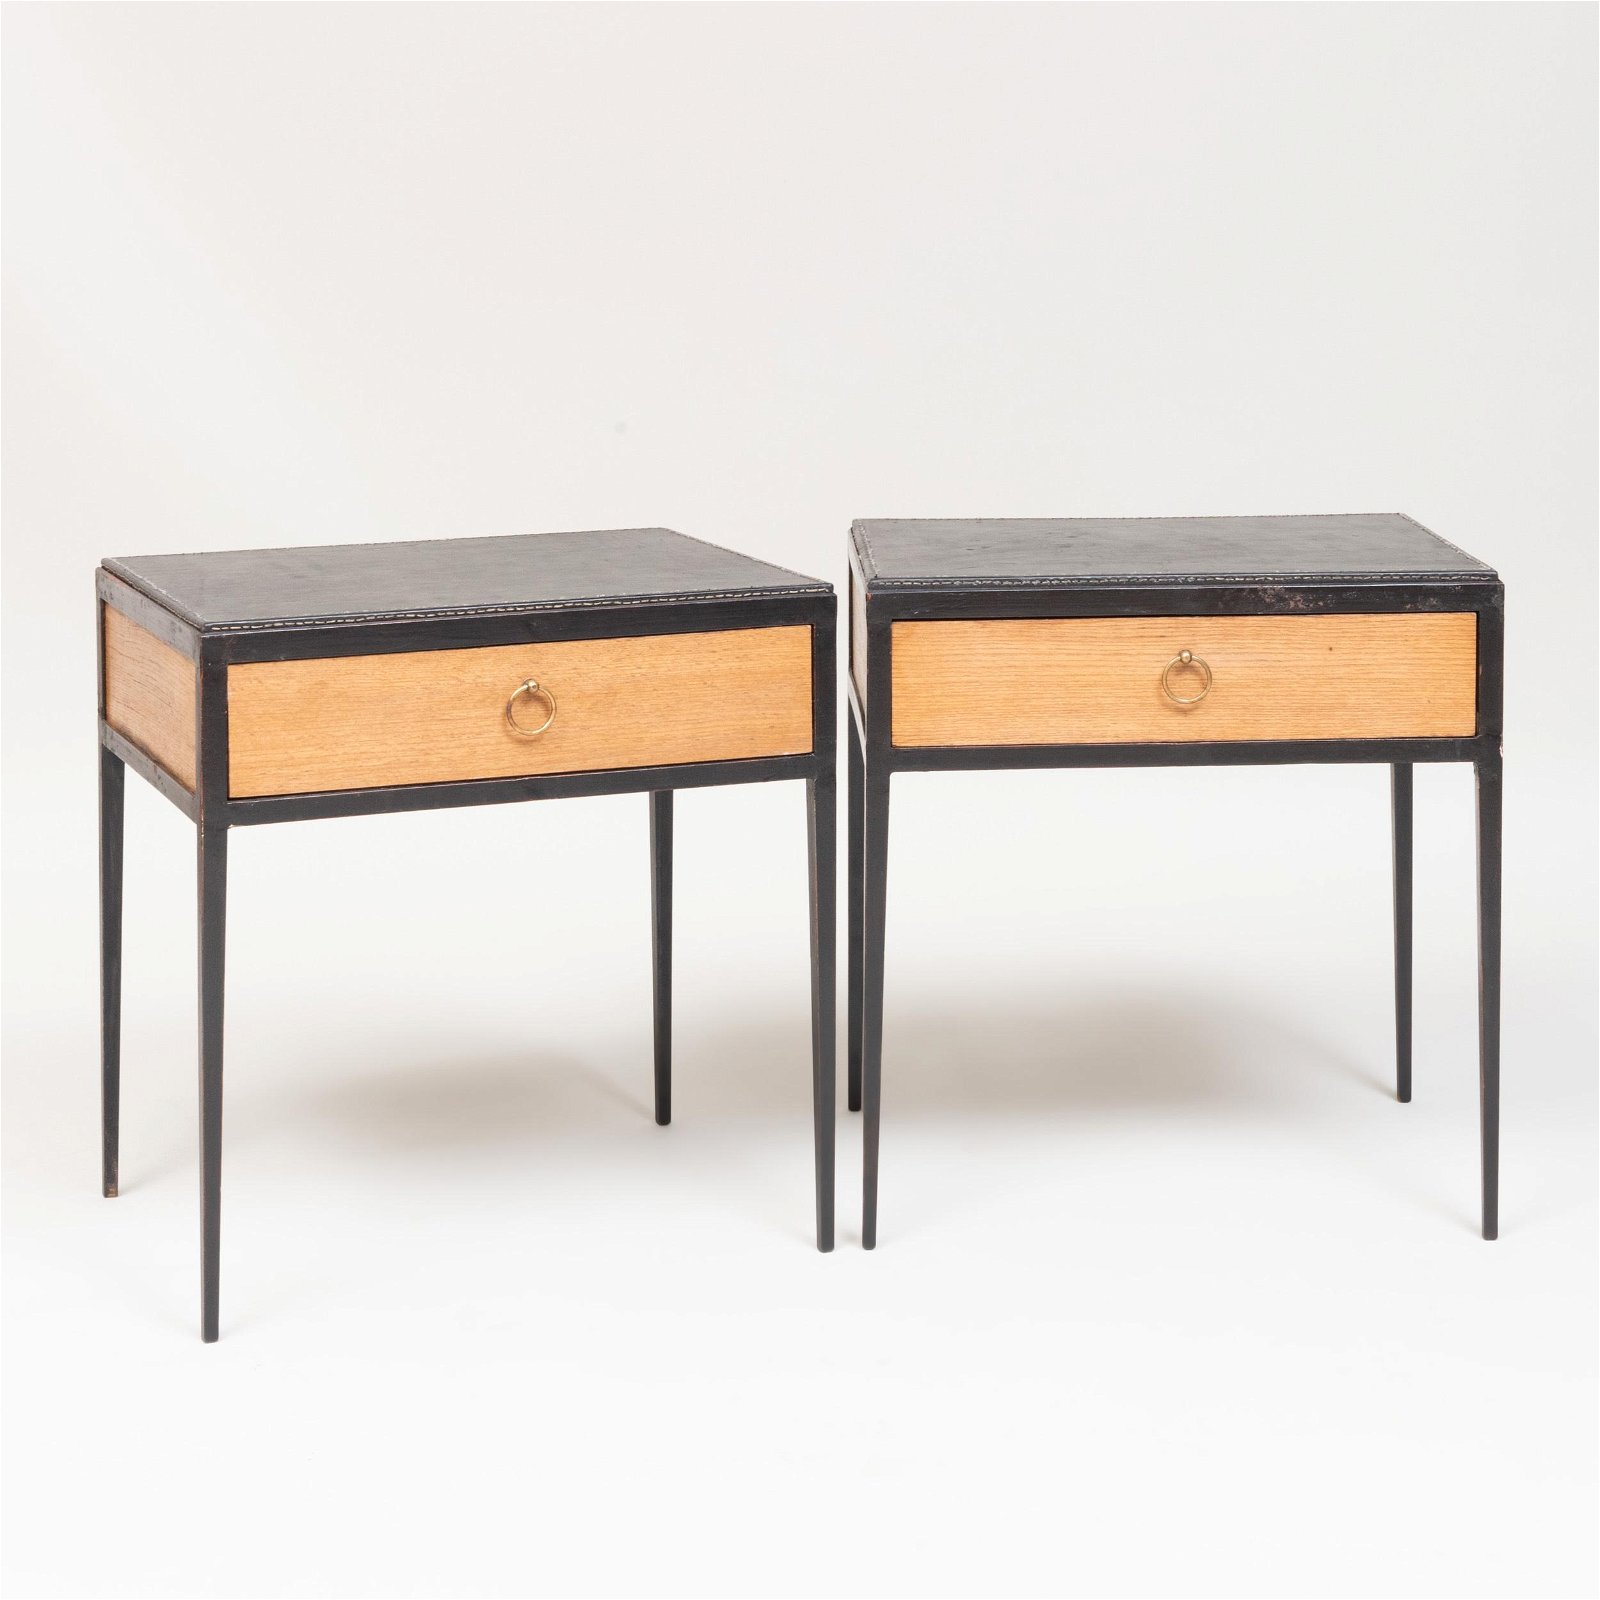 Pair of Jean-Michel Frank for Comte Metal, Leather and